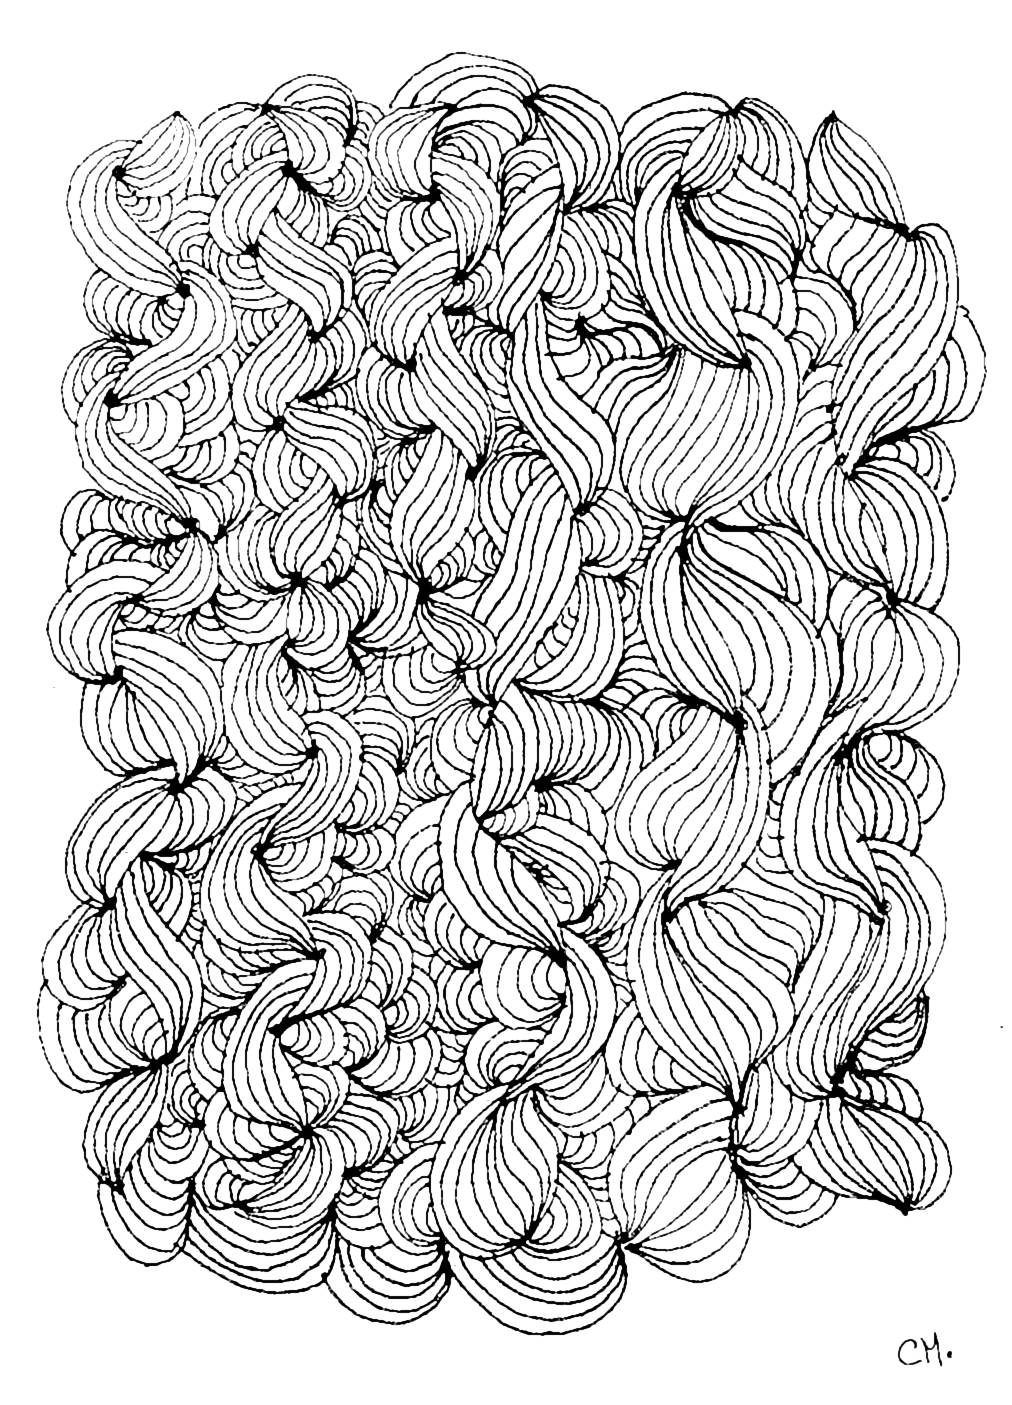 zentangle coloring pages free printable hard zentangle coloring pages coloring pages for kids free coloring printable pages zentangle